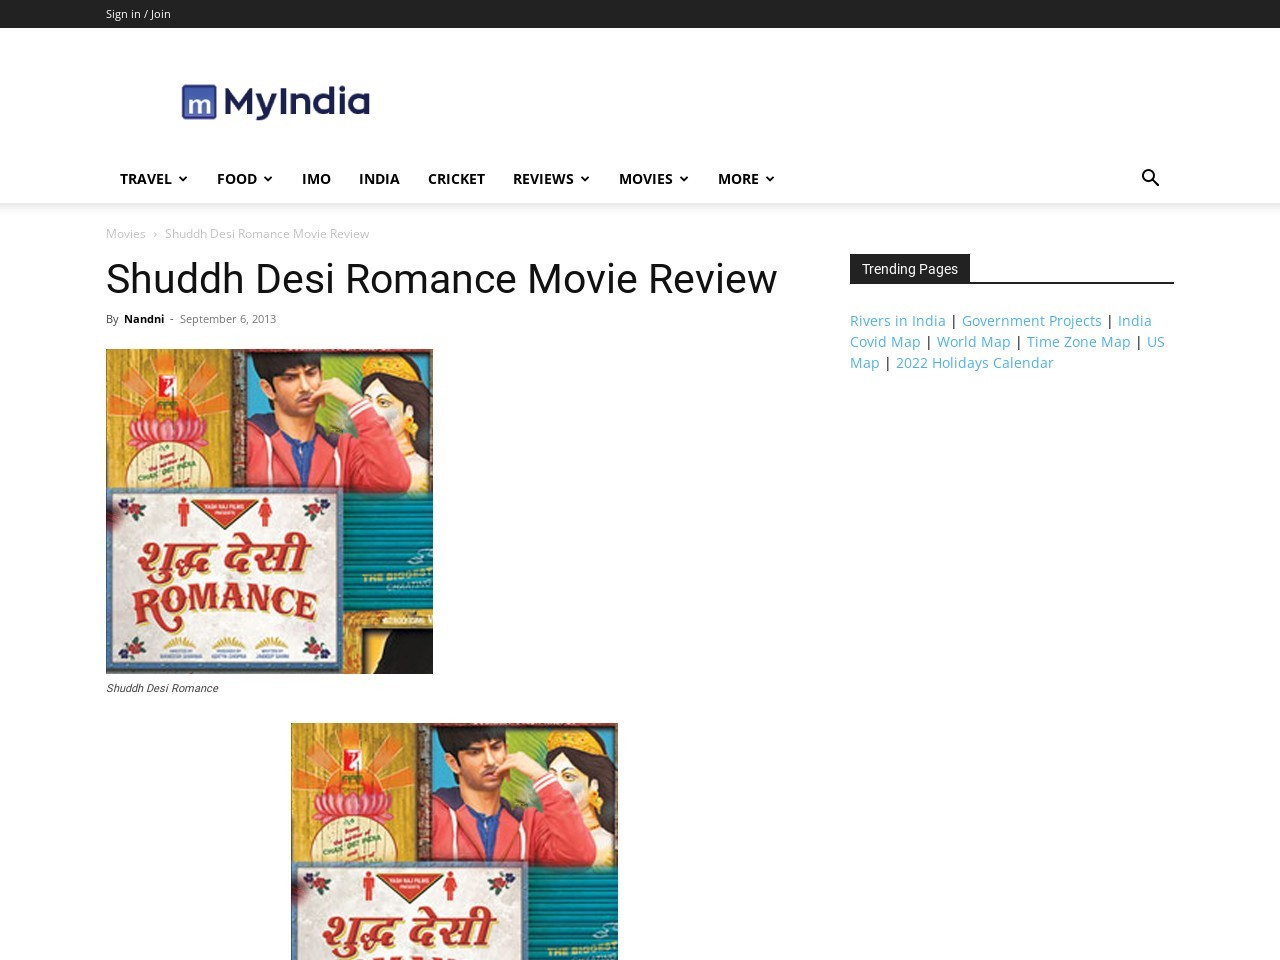 Shuddh Desi Romance: Movie Review – Maps of India